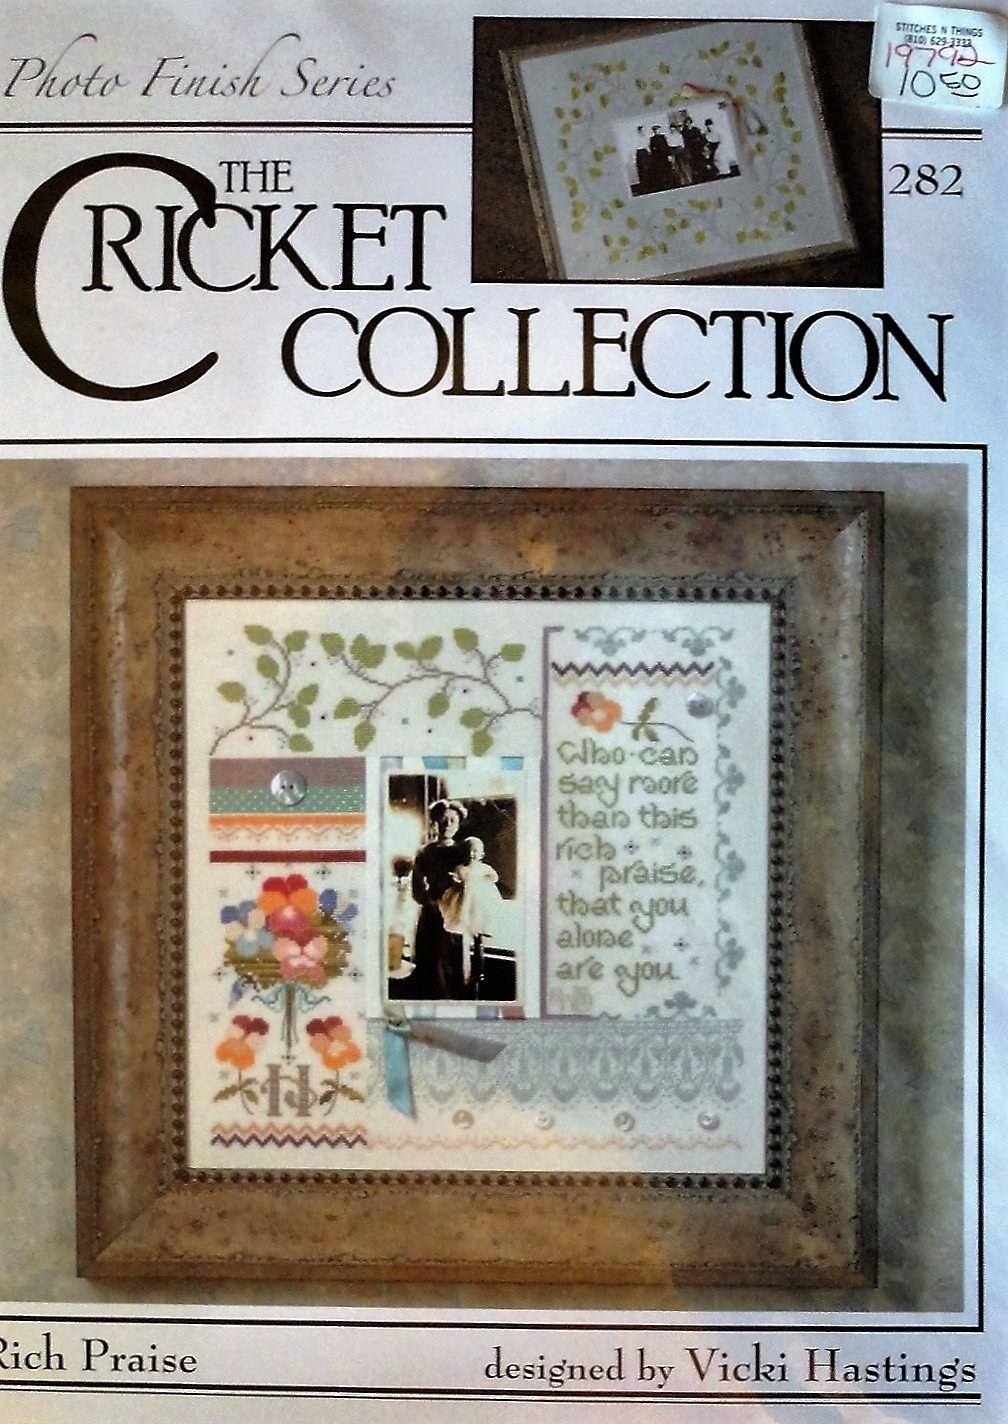 The Cricket Collection no. 282 Rich Praise photo finish Series